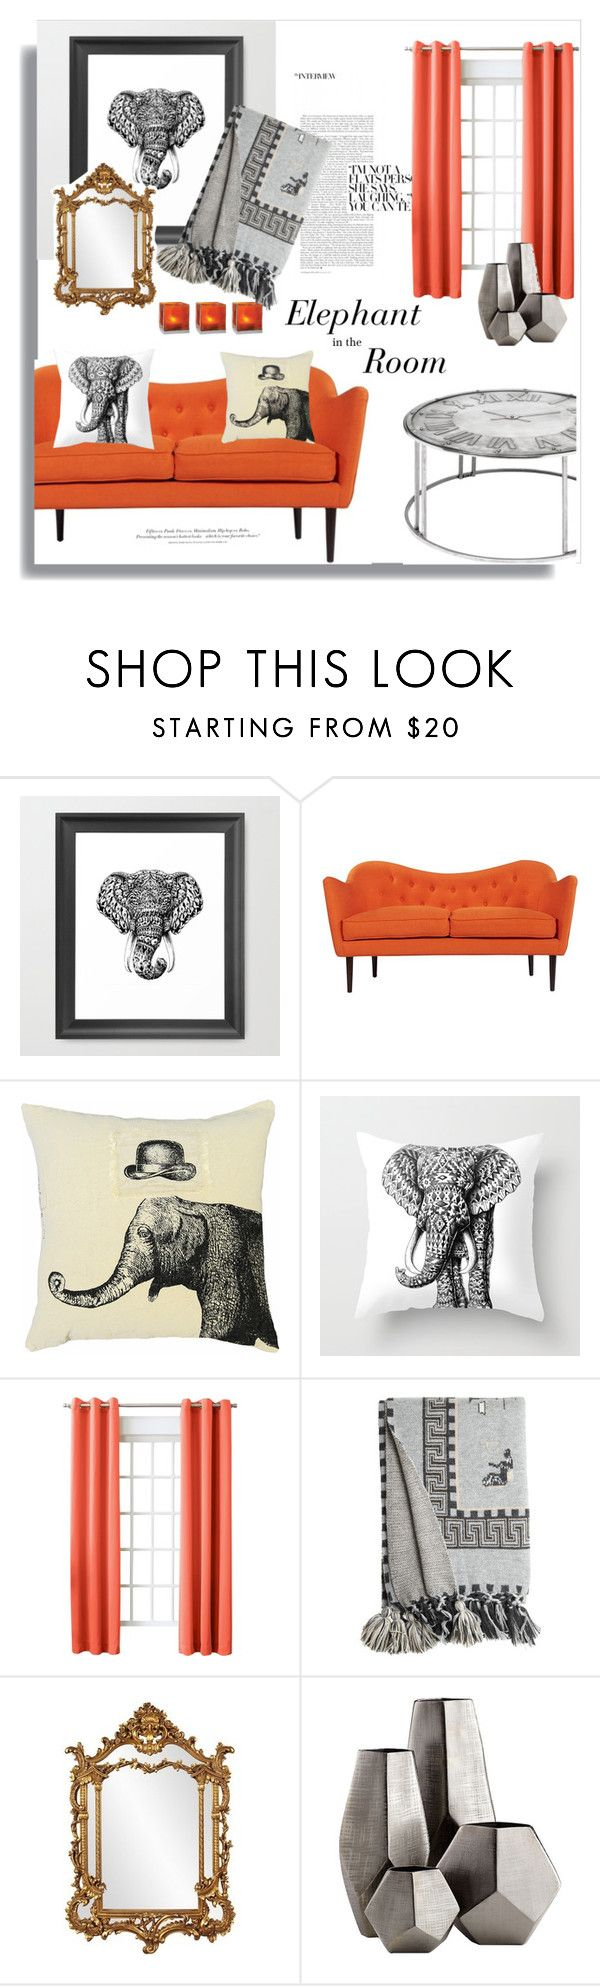 best 25+ elephant home decor ideas on pinterest | elephant room